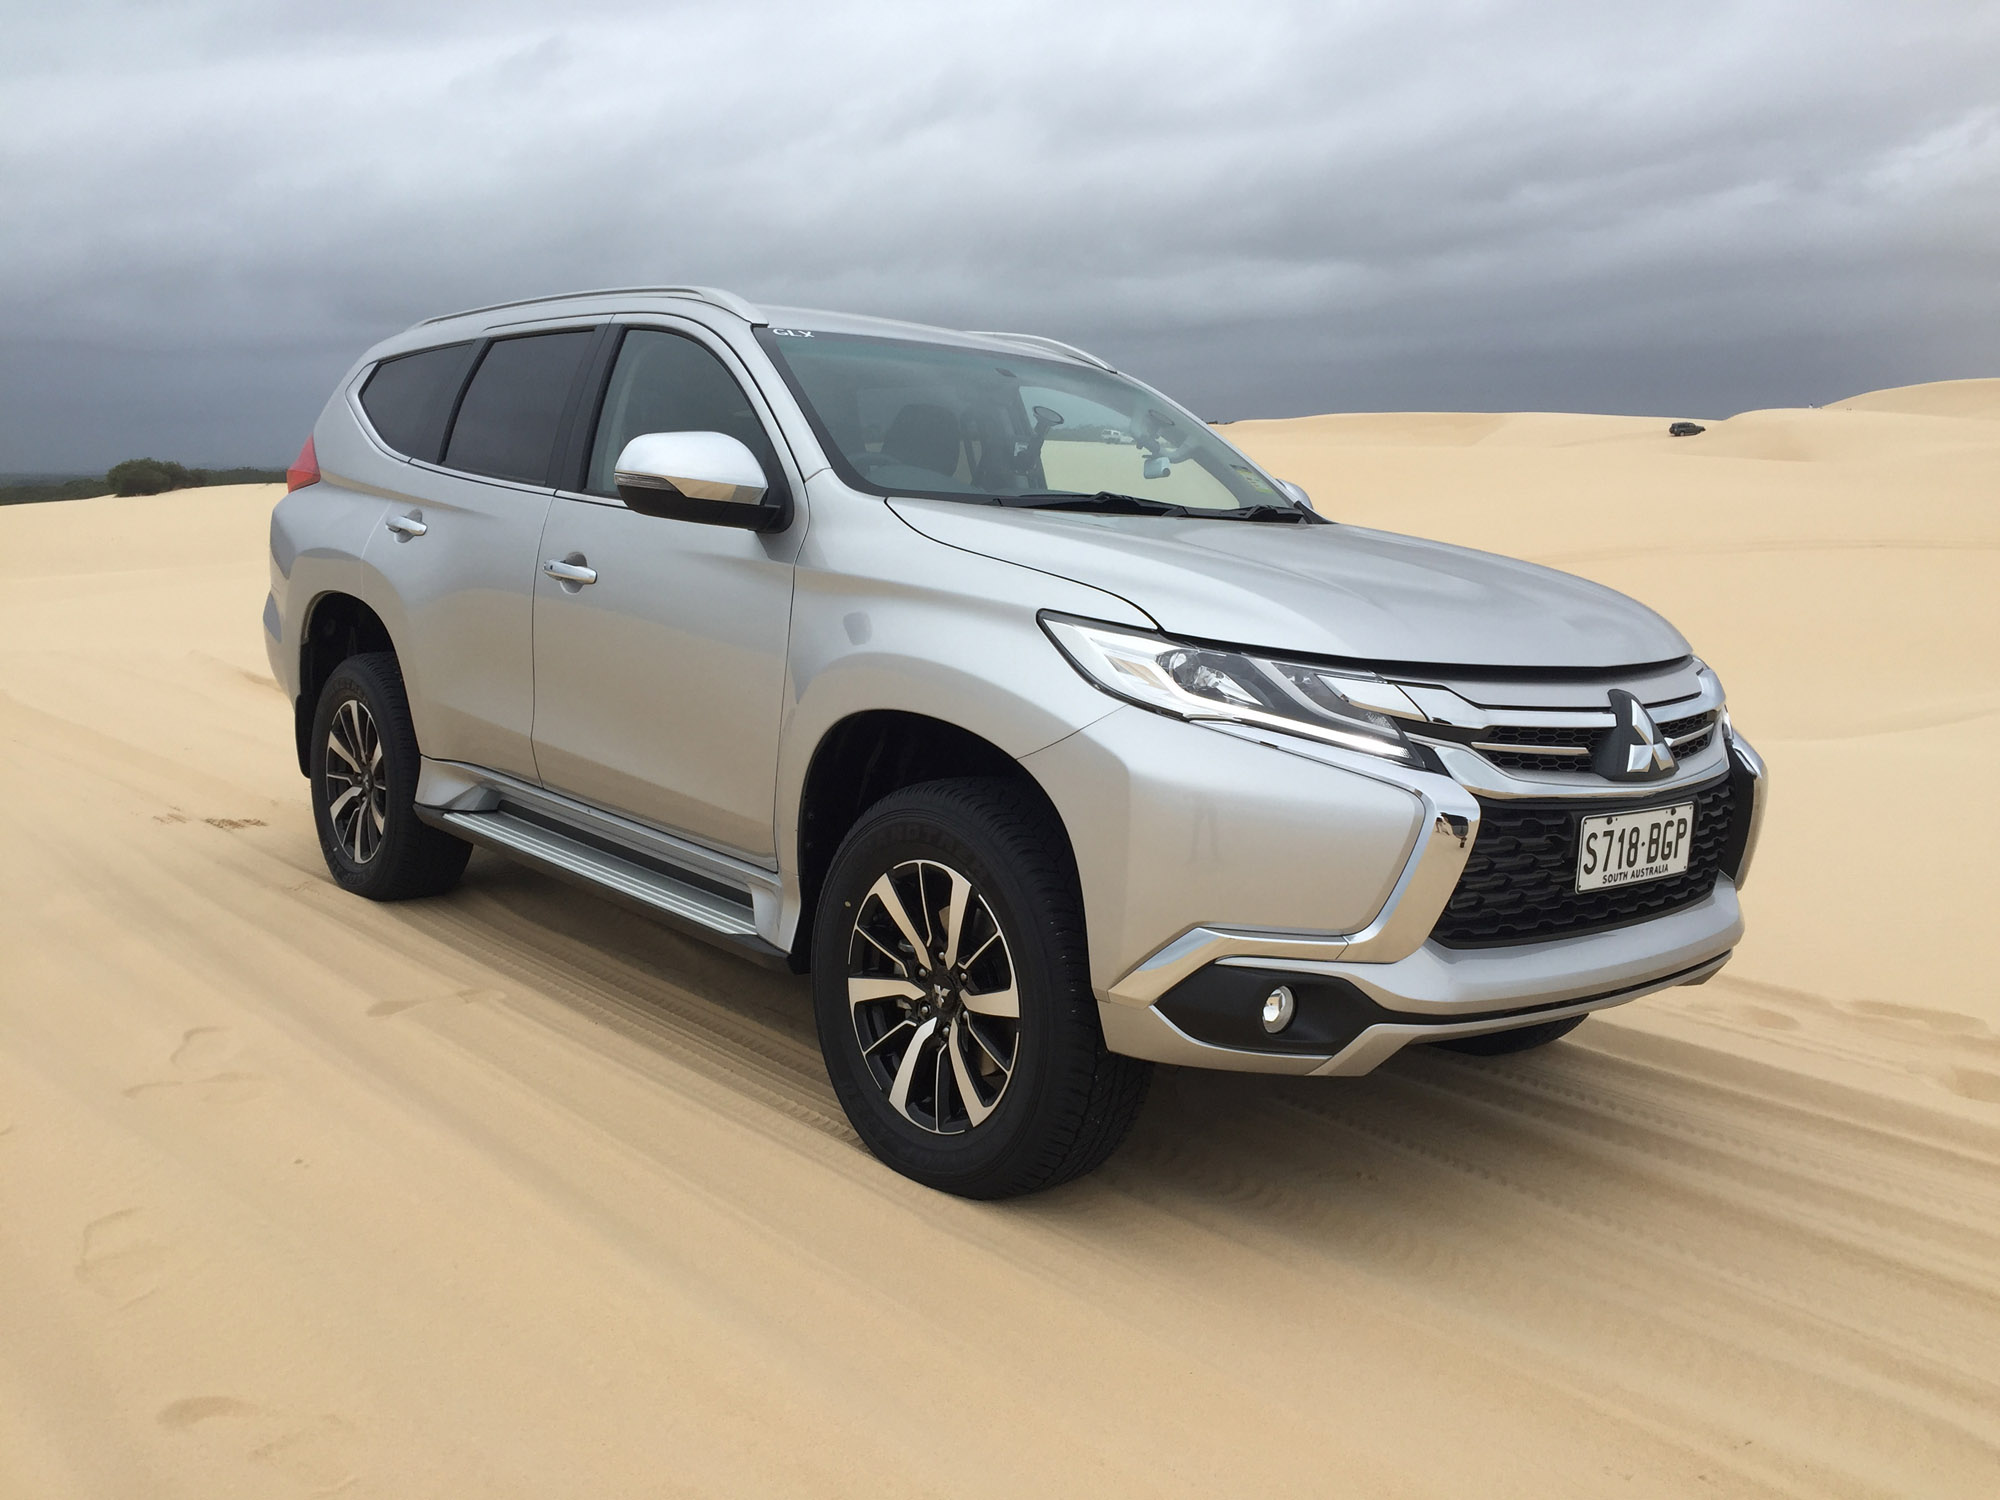 Featured Image of 2016 Mitsubishi Pajero Sport